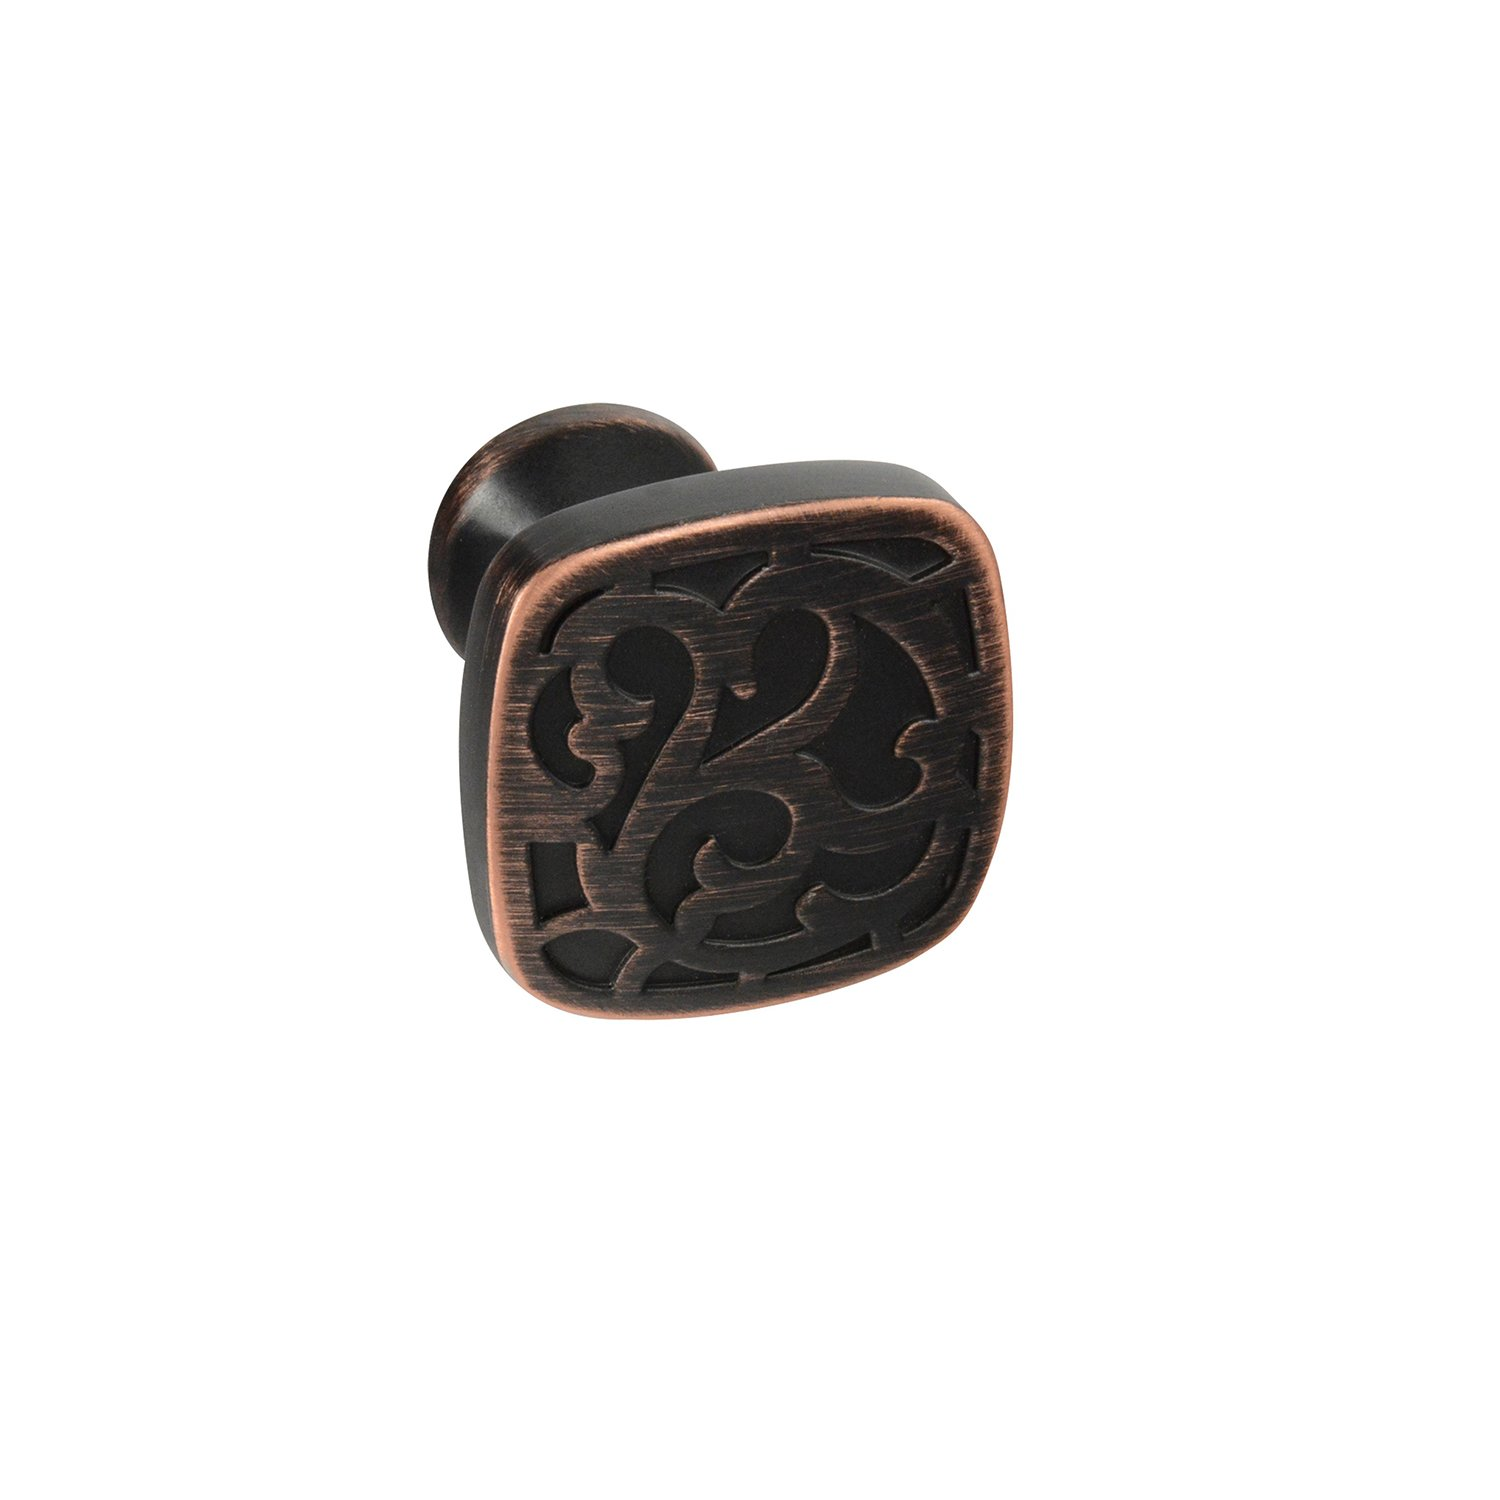 #2874-32 CKP Brand Enhance Collection Knob, Brushed Oil-Rubbed Bronze - 10 Pack